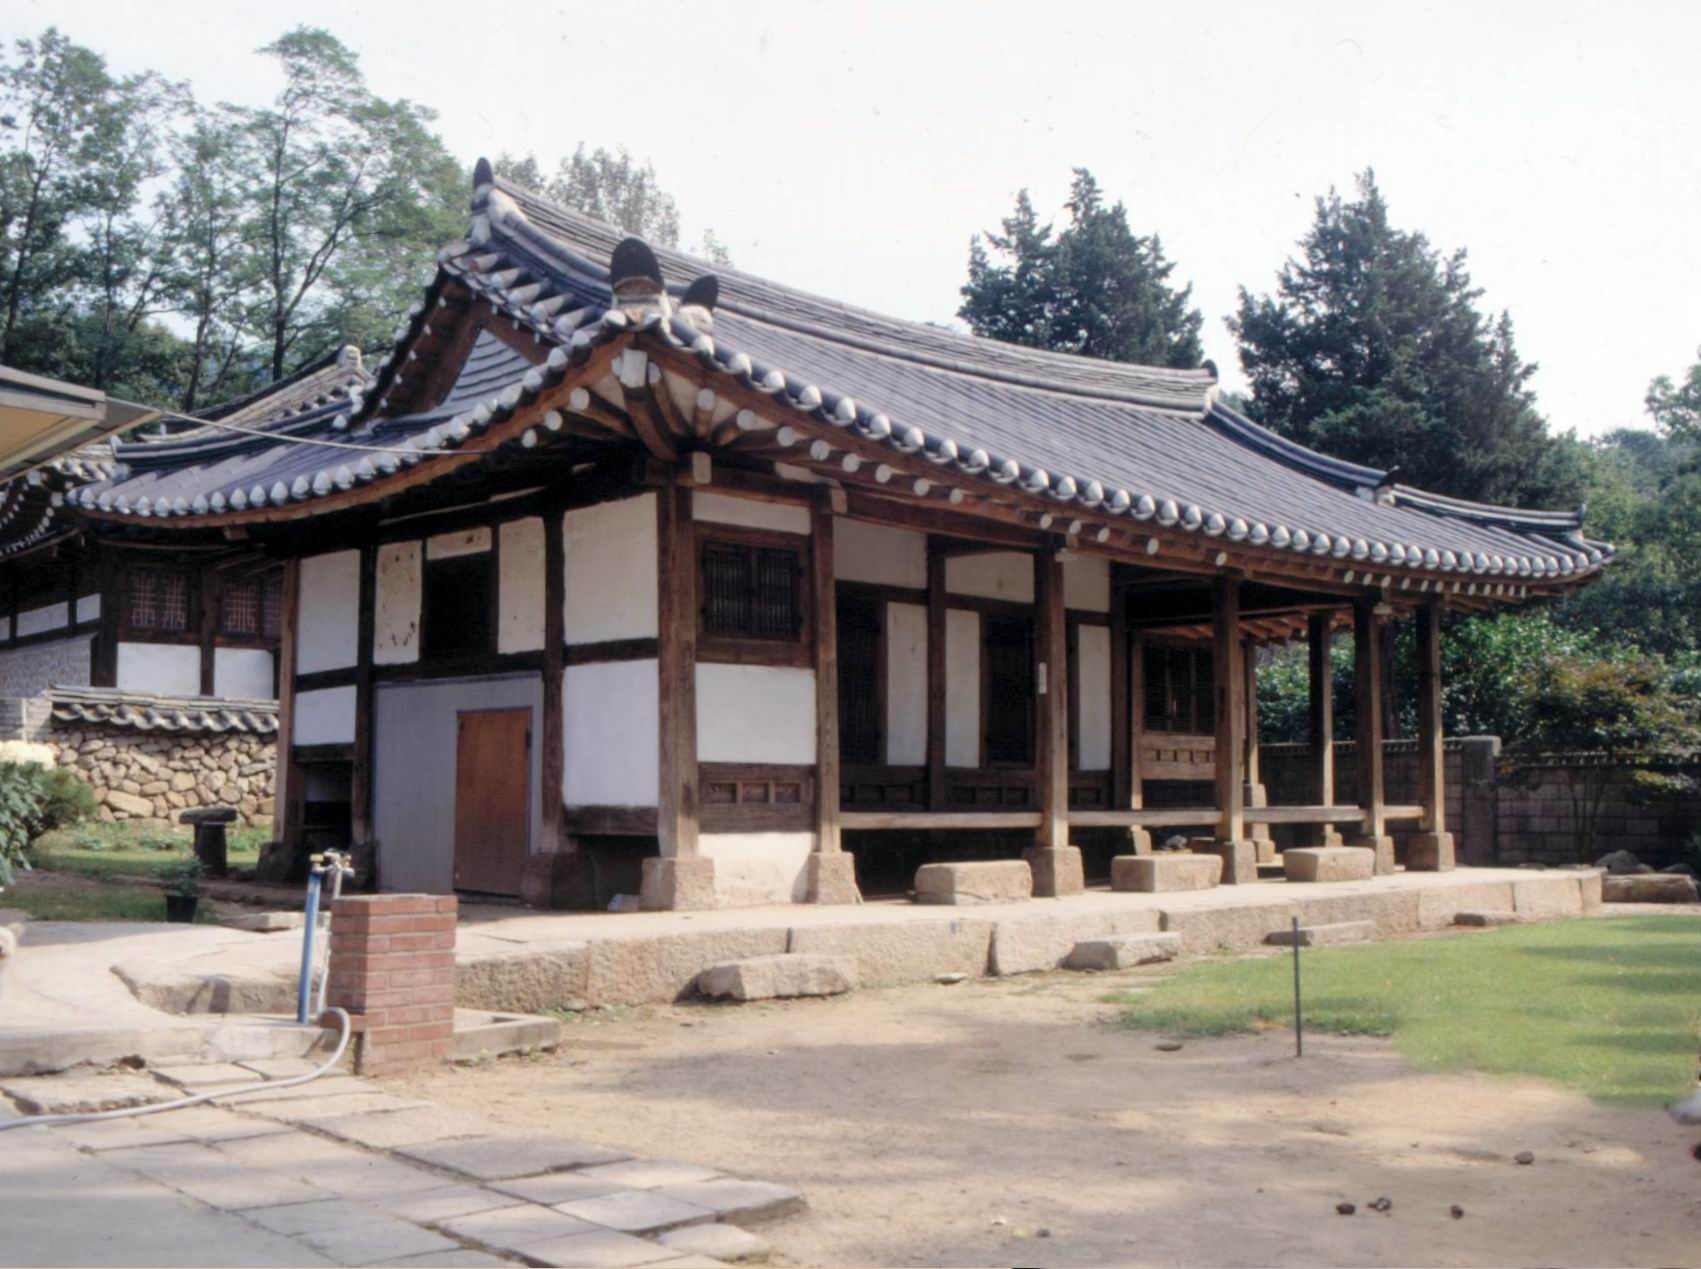 House of Seogye Bak Se-dang